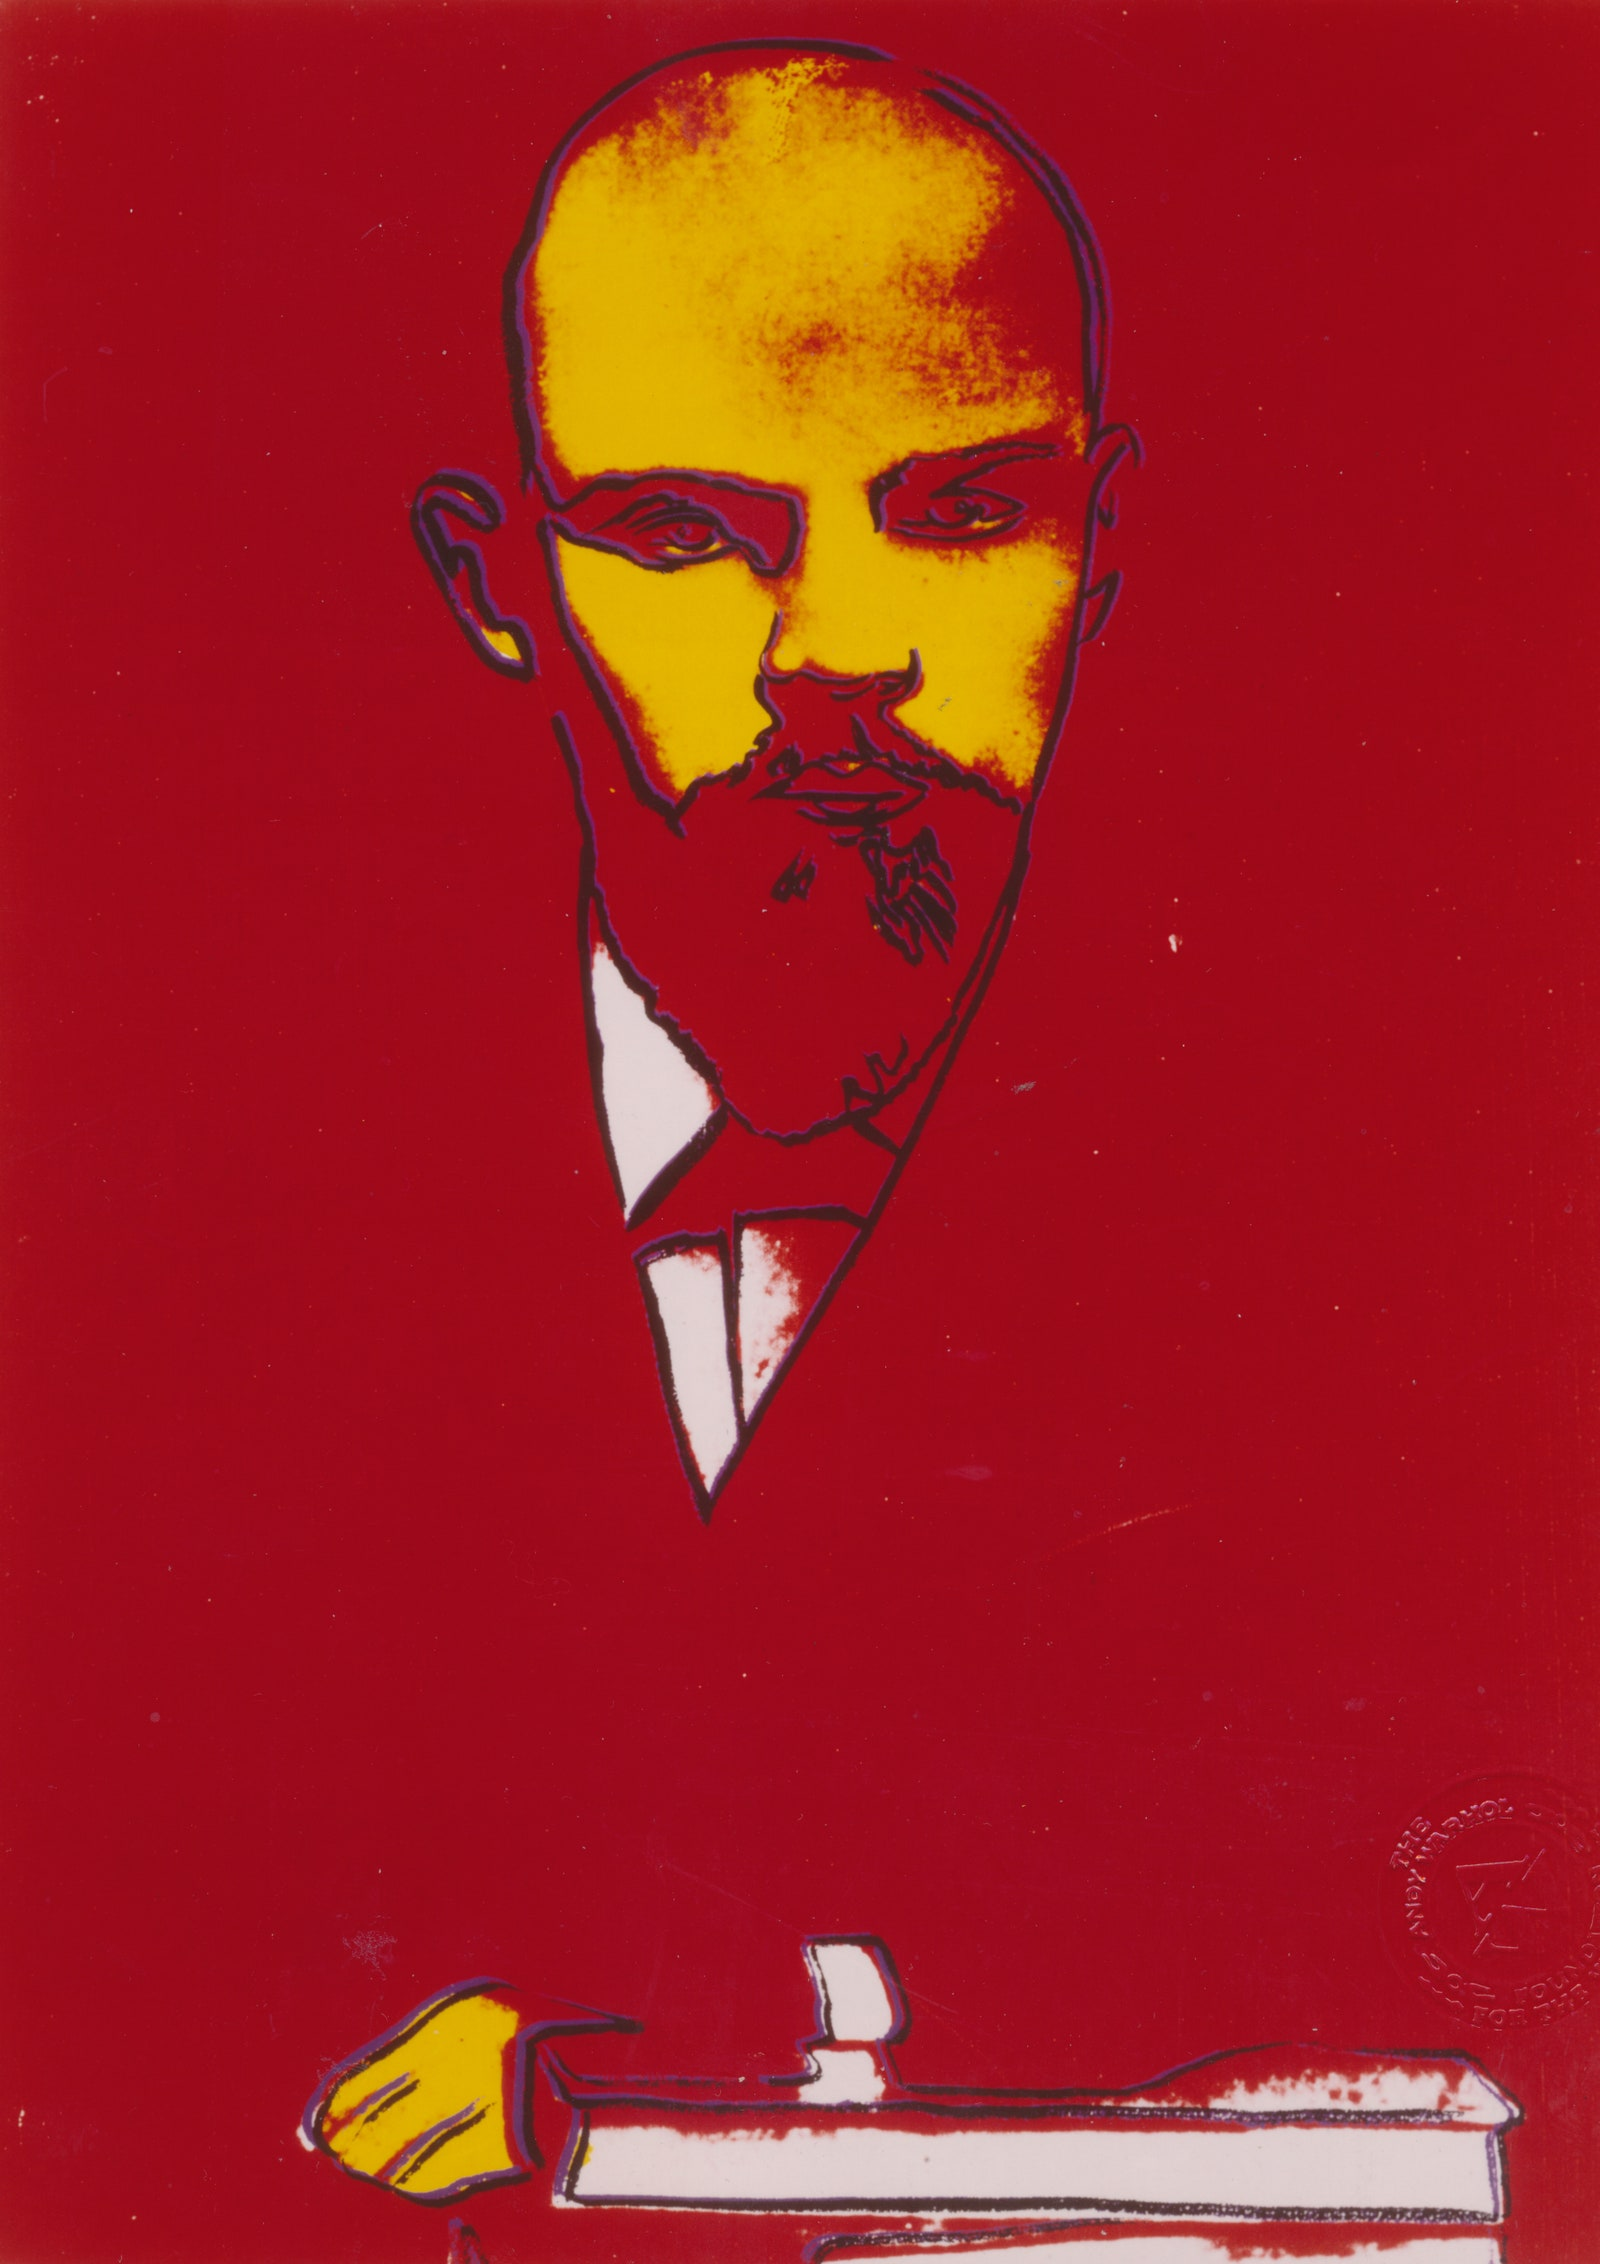 Lenin Red. All Andy Warhol artwork  2018 The Andy Warhol Foundation for the Visual Arts